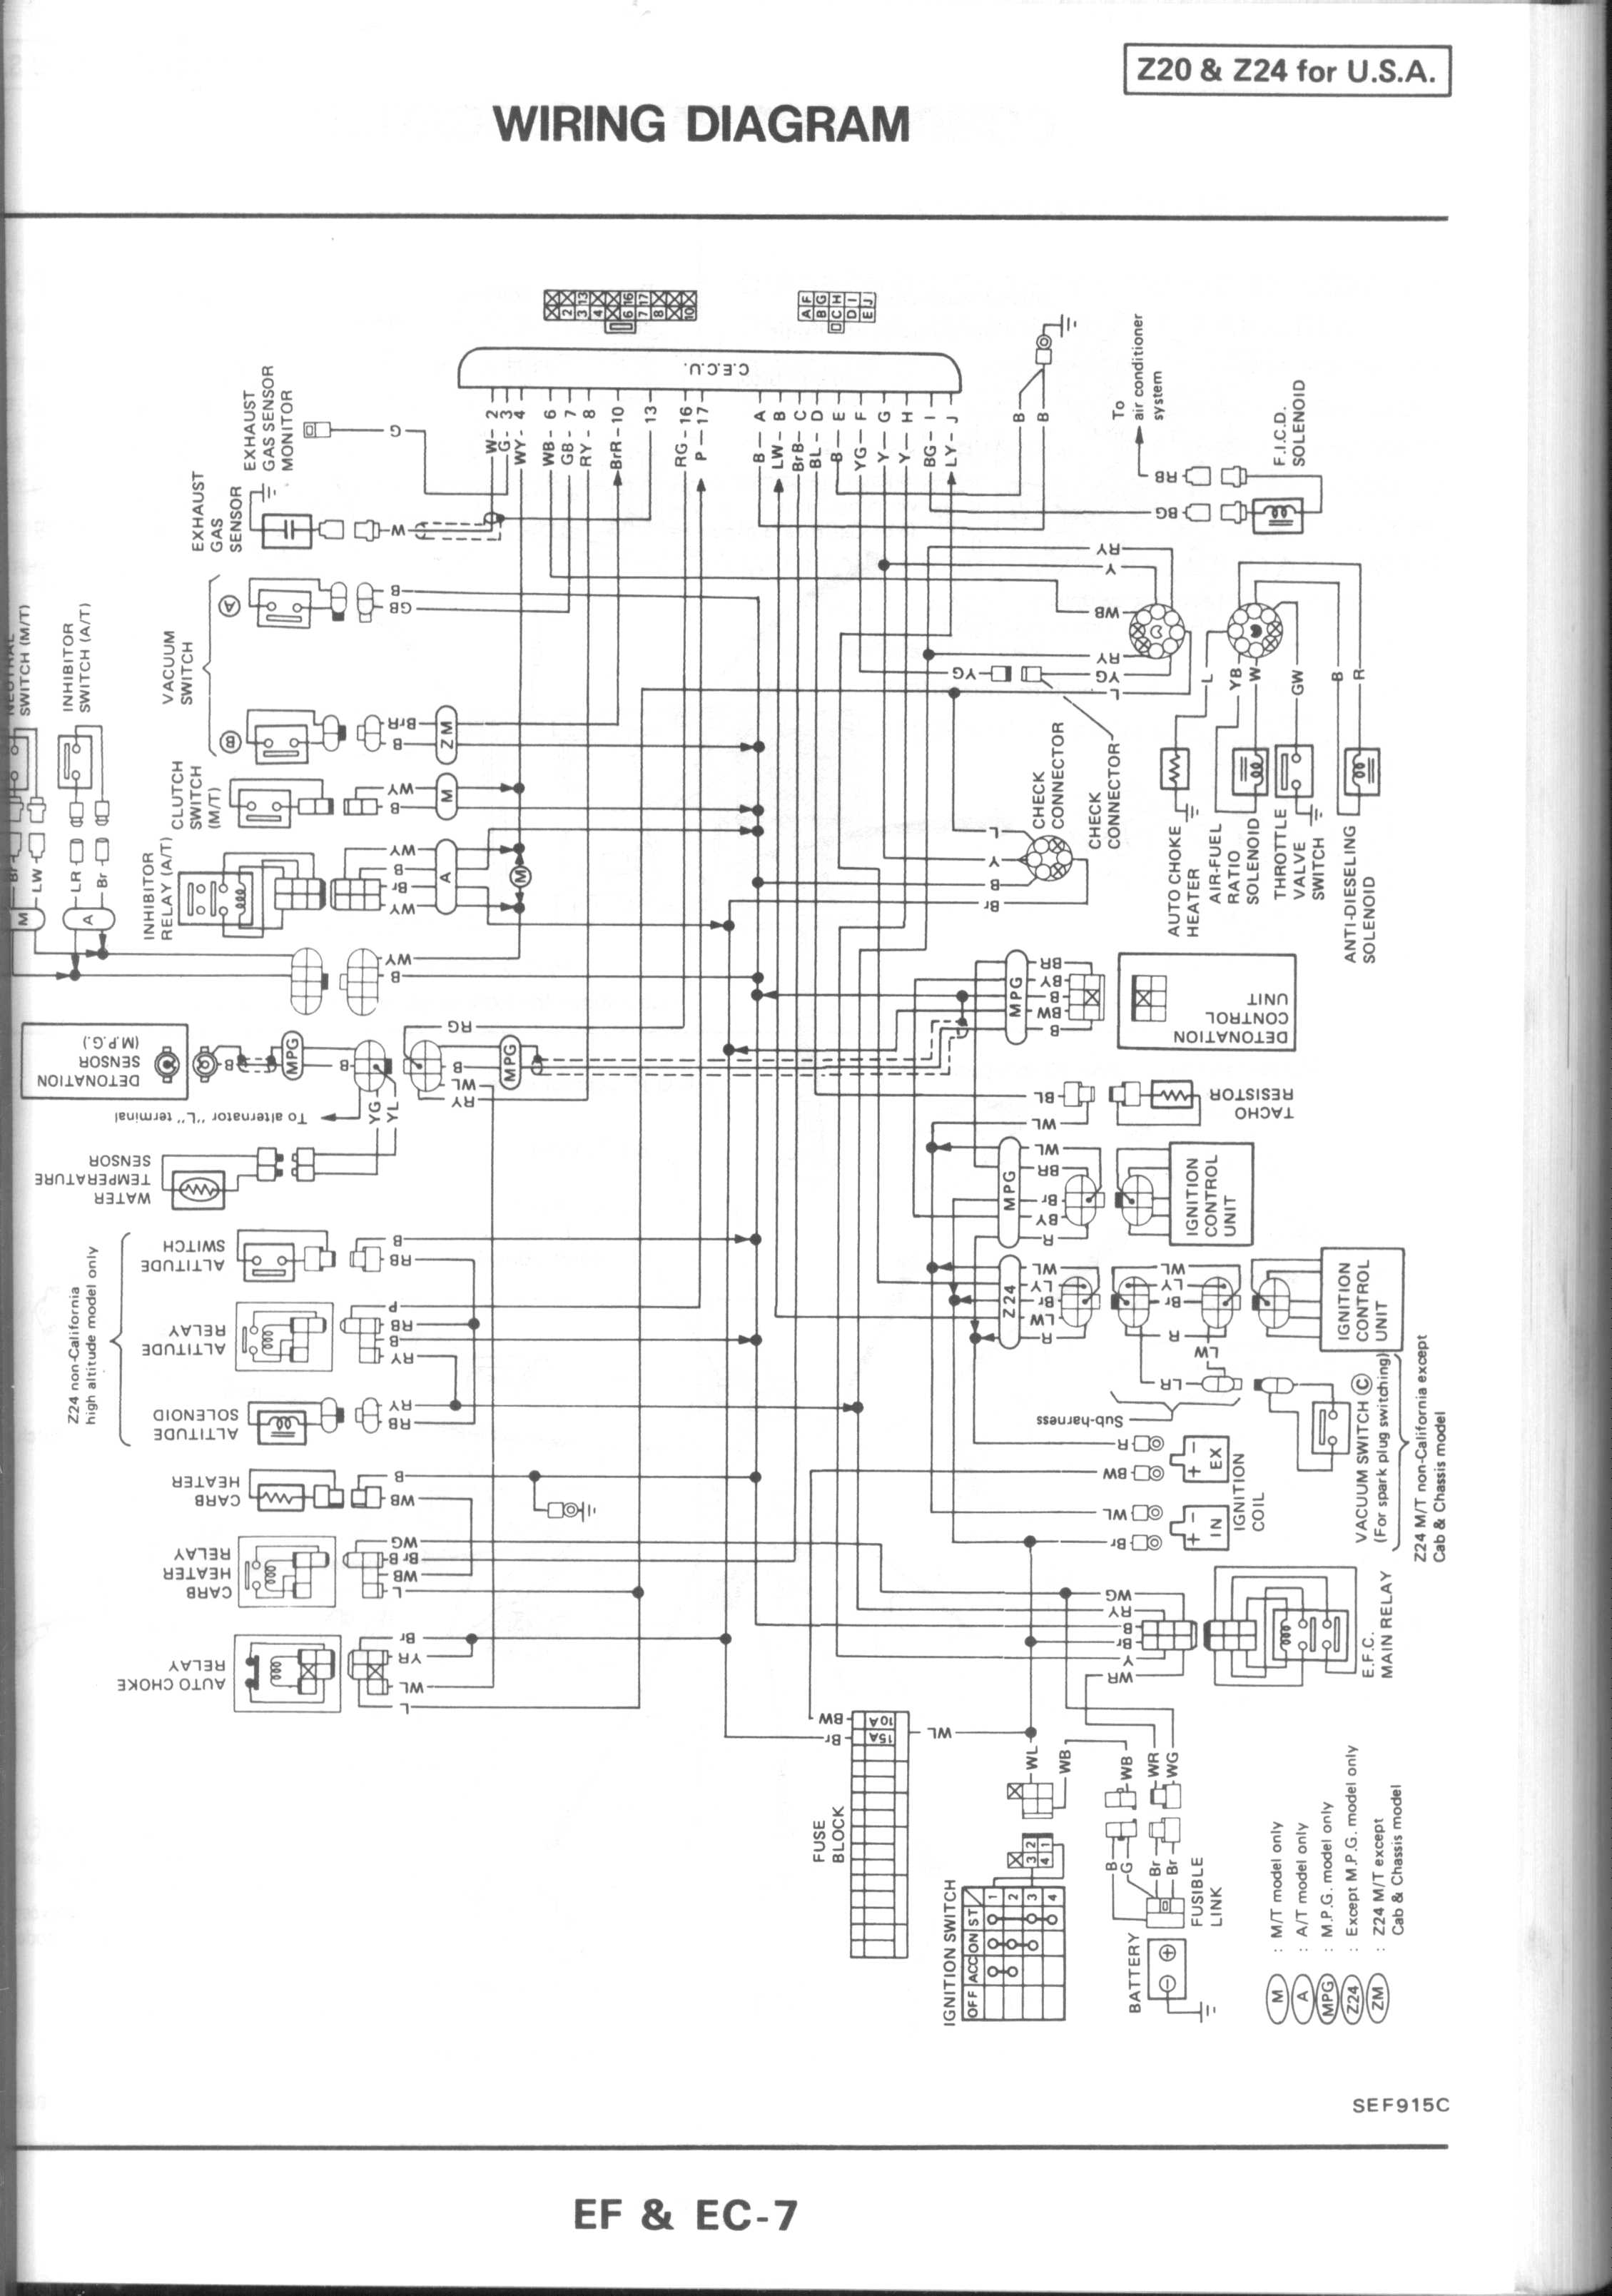 720_z24_ecu_wiring nissan nut datsun 720 wiring diagram at n-0.co